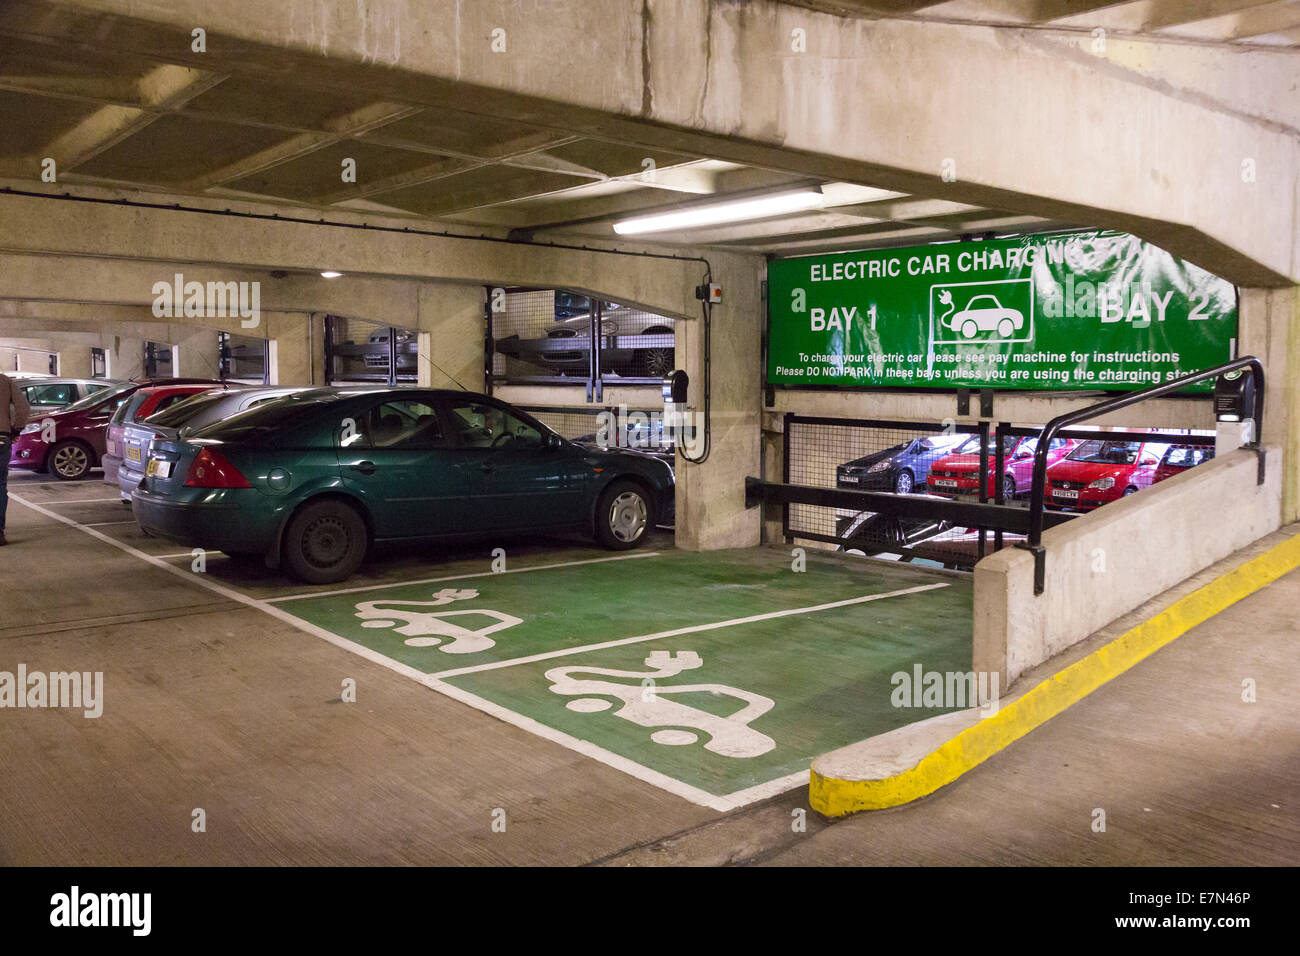 charging point for electric cars - Stock Image